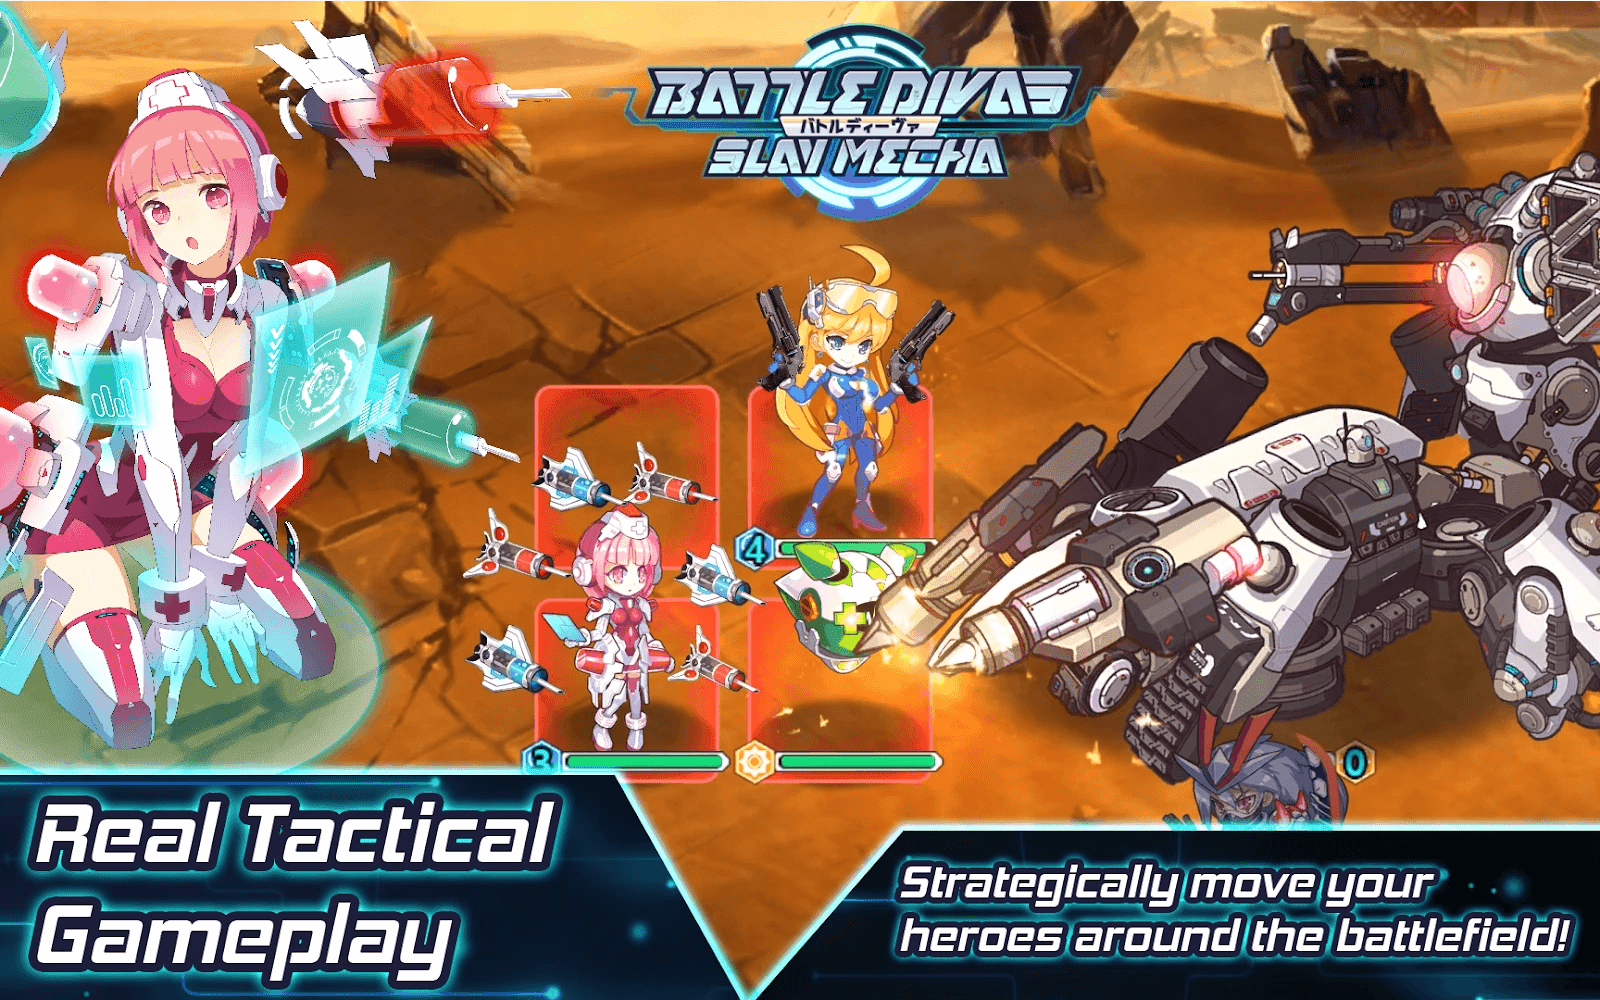 Battle Divas: Slay Mecha global server